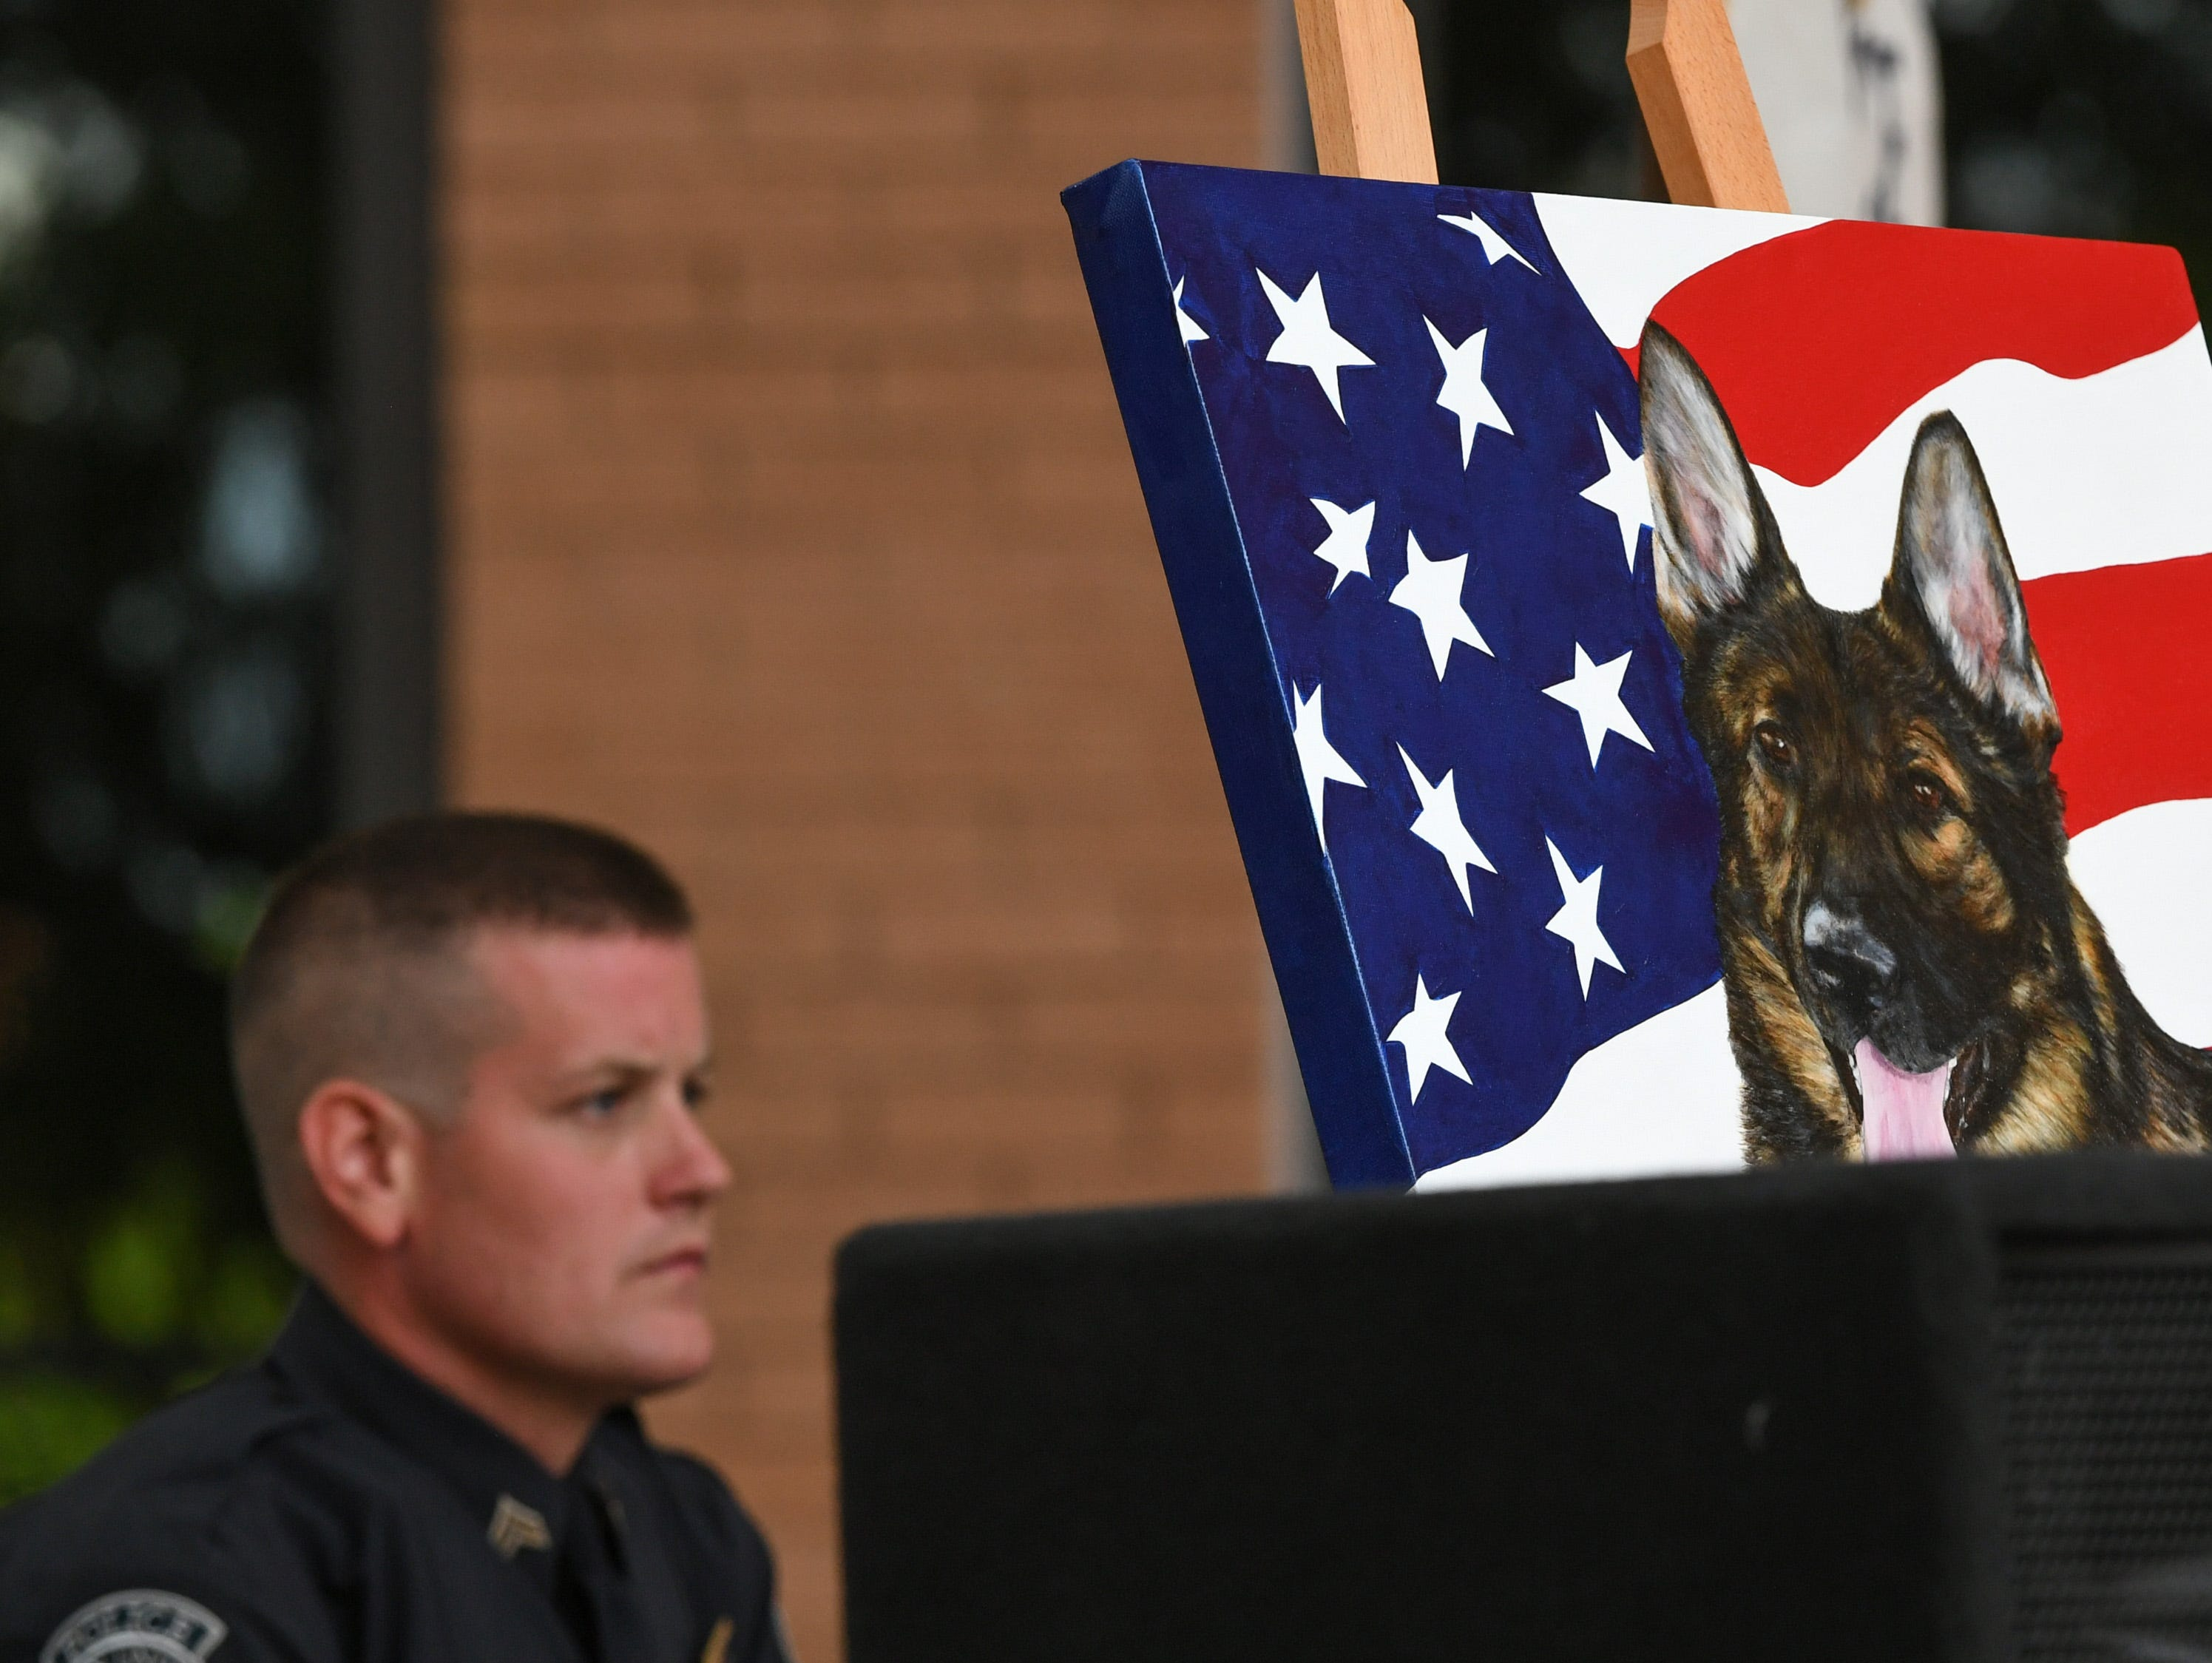 Chip Welborn, left, 2nd Vice President of Fraternal Order of Police Lodge #10 sits by a painting of K-9 Hyco during the 2019 Peace Officer Memorial Service in front of the Anderson County Courthouse Wednesday May 15, 2019. People attended to help honor the lives of officers lost in the line of duty. Loreena Pantaleone of Pennsylvania painted Hyco and gave it to Brandon Surratt of the Greenville County Sheriff's Office, who was Hyco's handler when he was shot in the line of duty in 2015 working with the Anderson County Sheriff's Office.